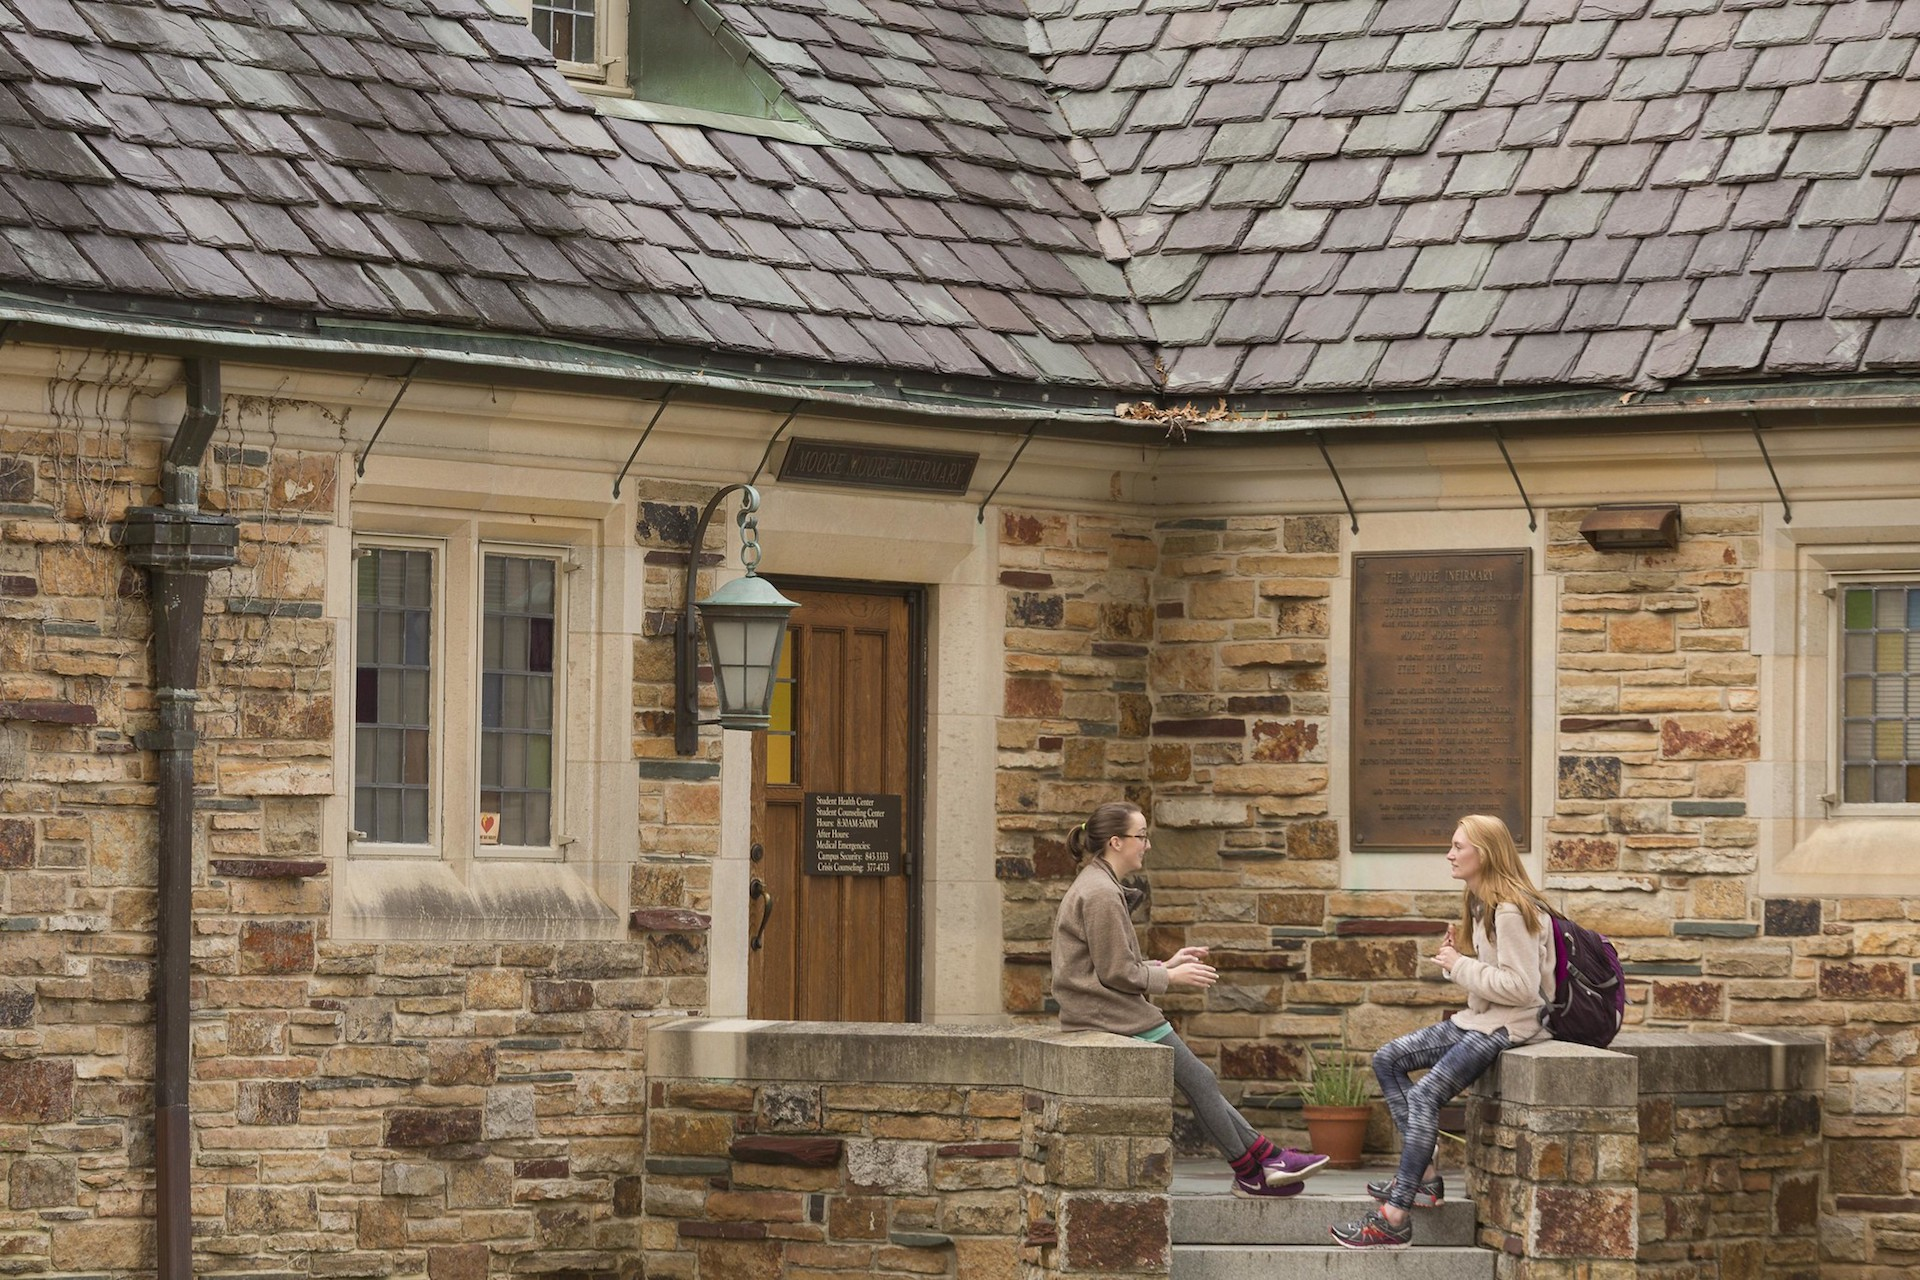 Two girls sitting in front of a sandstone building with a slate roof.